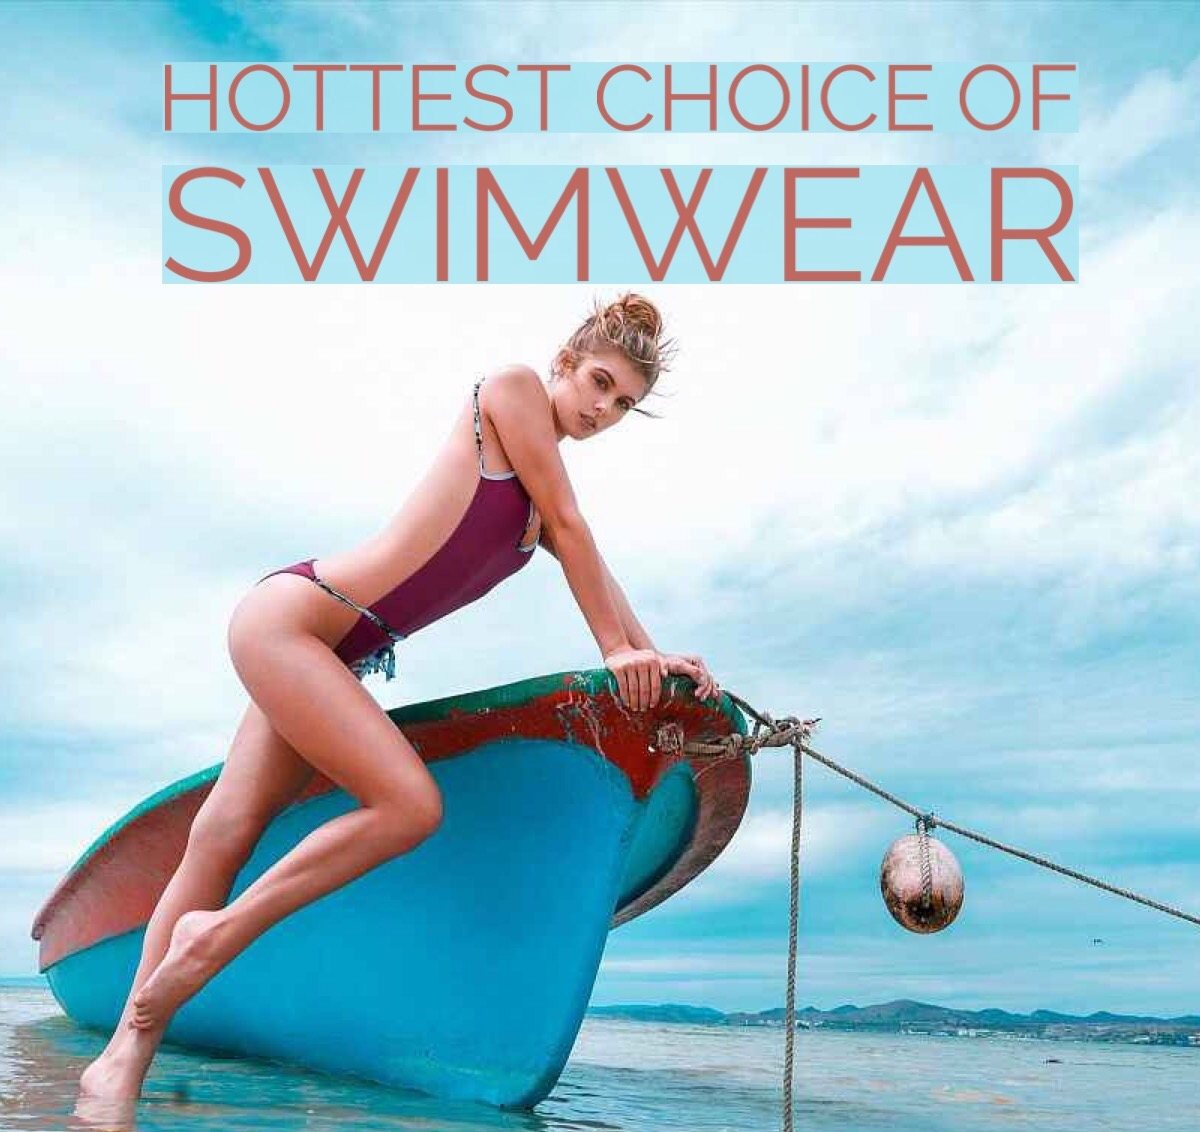 HOLIDAY SEASON HOTTEST MONTH FOR SWIMWEAR